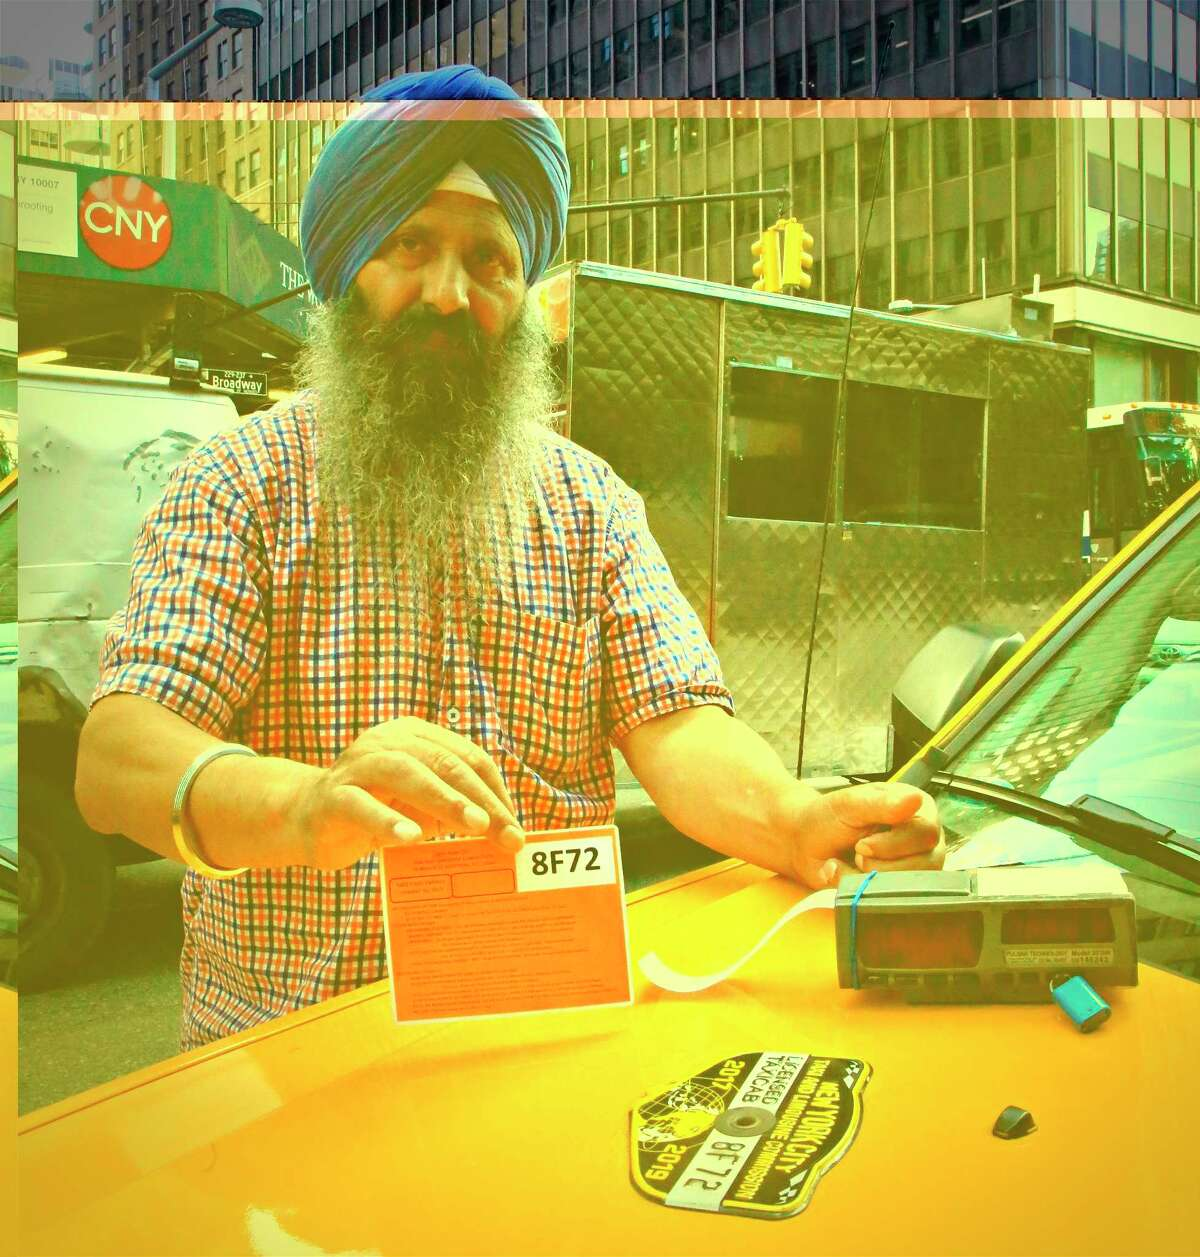 In this Thursday, Aug. 2, 2018 photo, yellow taxi medallion owner Lal Singh shows a license, meter device and the medallion tag required to operate his cab in New York. New York City's yellow cab drivers, thrown into financial upheaval in recent years by the arrival of a veritable army of black cars picking up passengers through ride-hail apps, could be getting a lifeline from elected officials voting on legislation Wednesday, Aug. 8, that would pump the brakes on Uber, Lyft and others. (AP Photo/Bebeto Matthews)